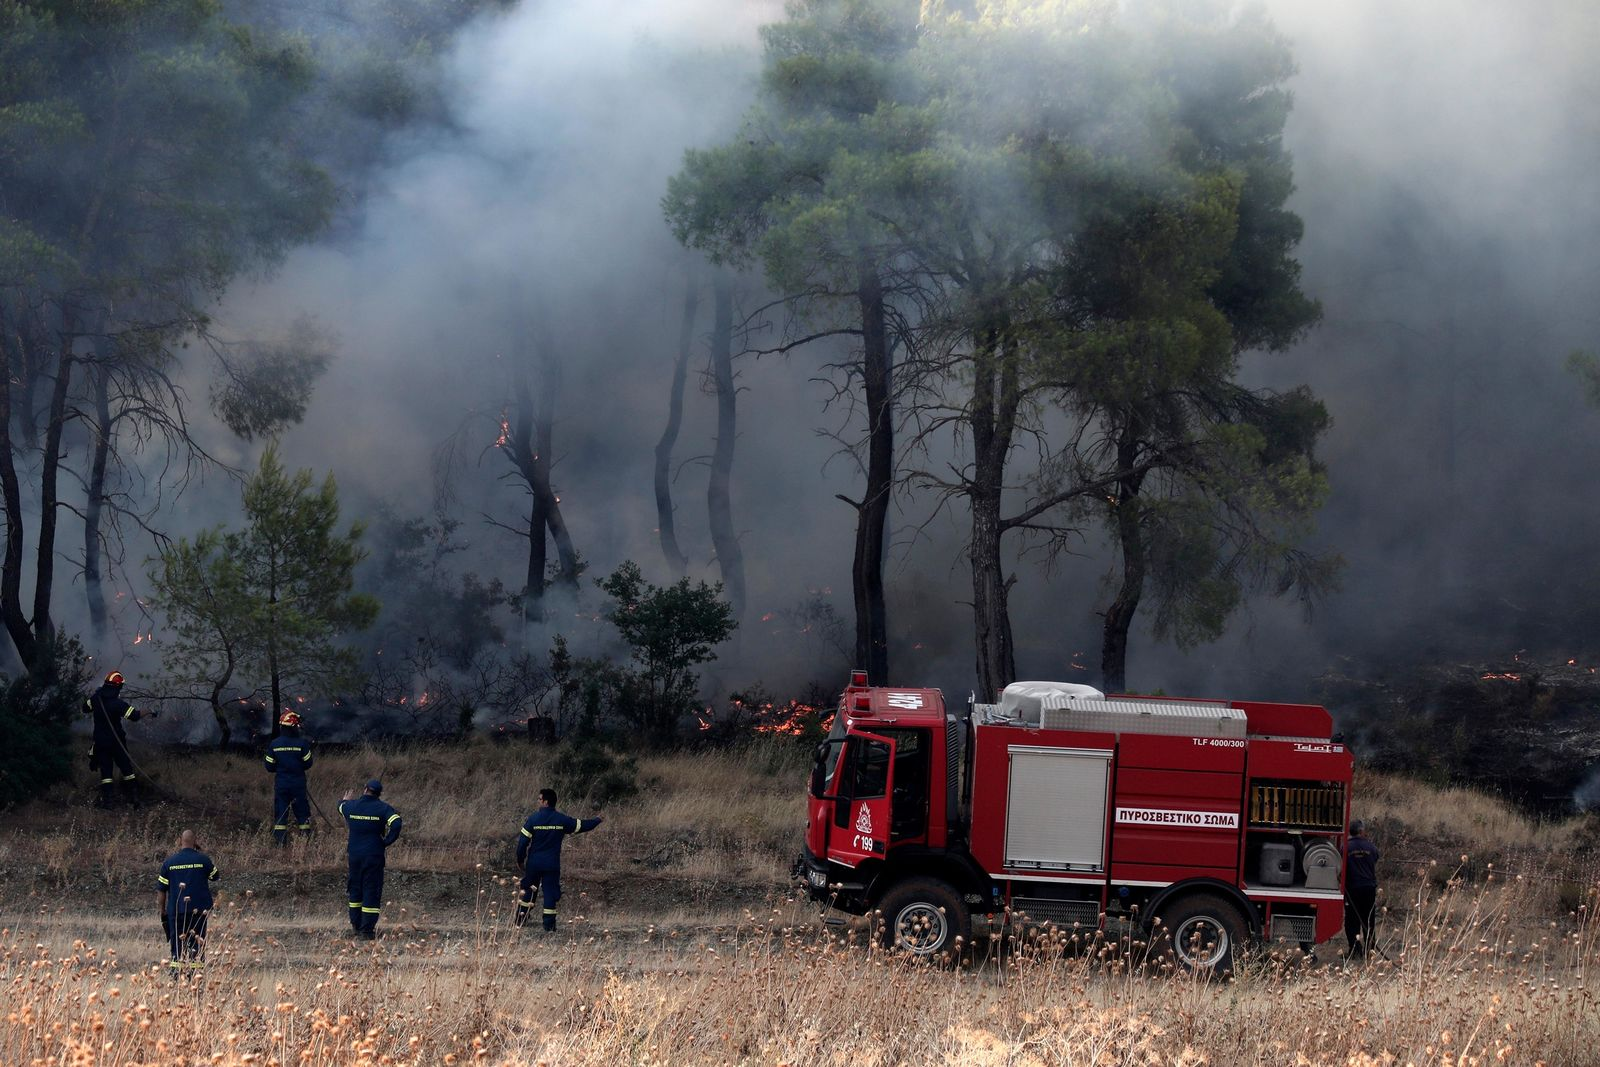 File - Firefighters try to extinguish a wildfire in Makrymalli village on the Greek island of Evia, Wednesday, Aug. 14, 2019. (AP Photo/Yorgos Karahalis)